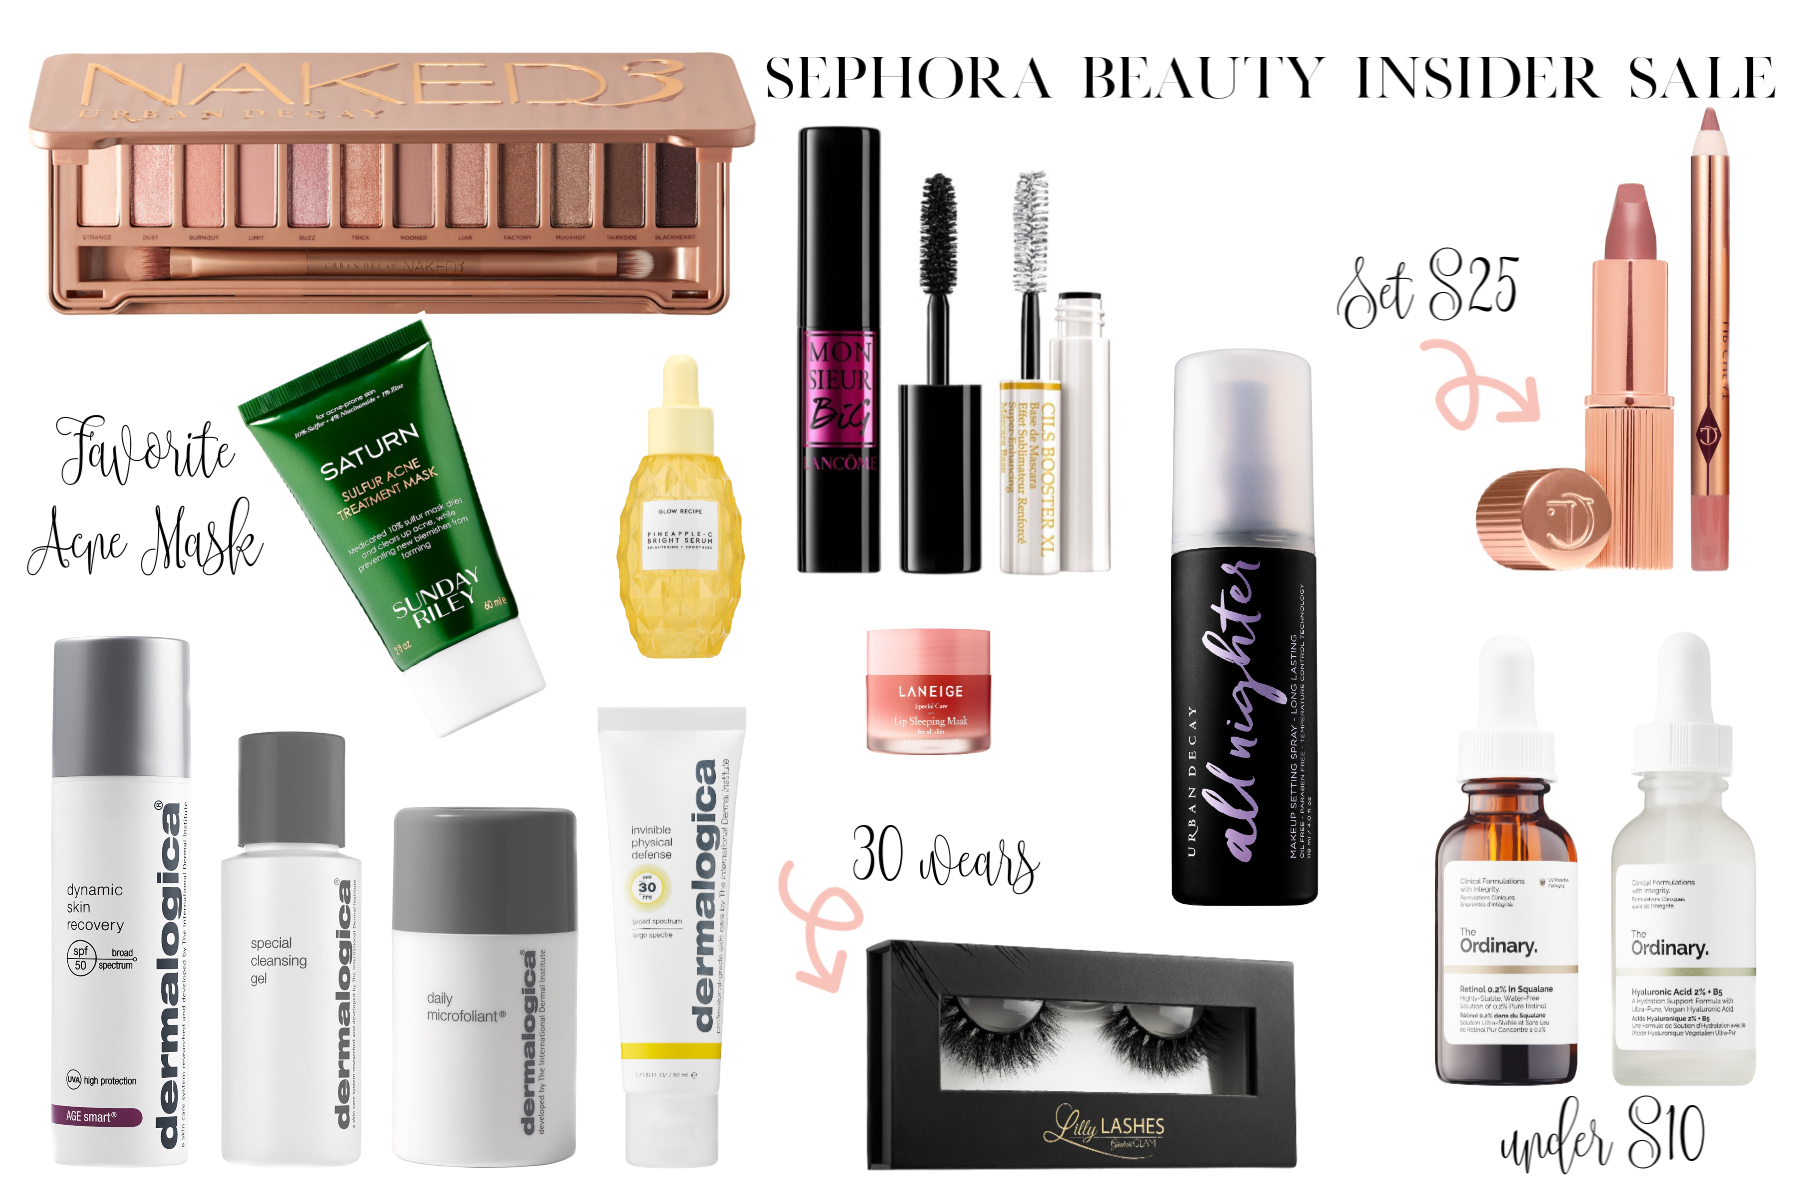 SEPHORA BEAUTY INSIDER SPRING SAVINGS EVENT